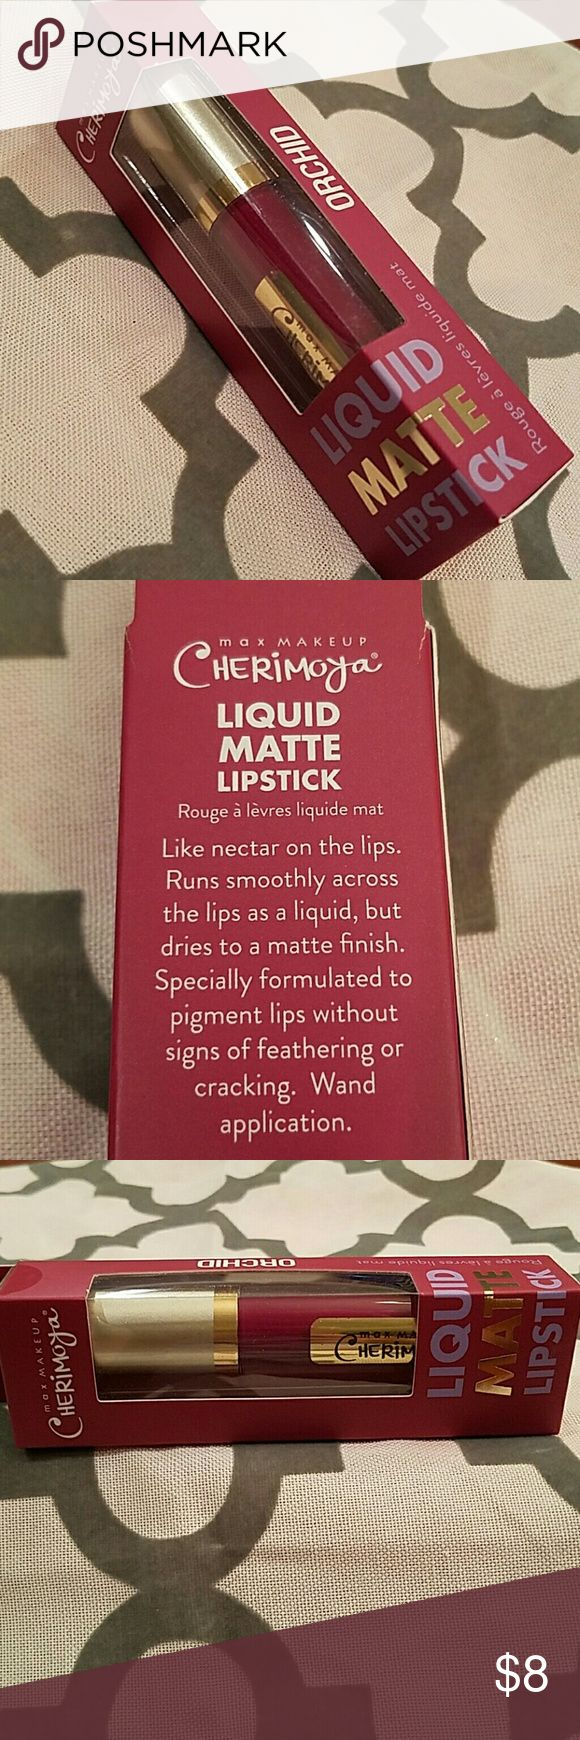 """Kiss proof Long-wear Liquid Matte Lipstick Liquid Matte Lipstick. Goes on as a liquid and dries to a rich long-lasting kiss-proof matte finish. This color is in """"Orchid"""" red and lasts hour after hour! THIS STUFF REALLY LASTS! New never used, still in its original sealed packaging. This is the last one I have in this shade. Bundle and save. Max Makeup Makeup"""